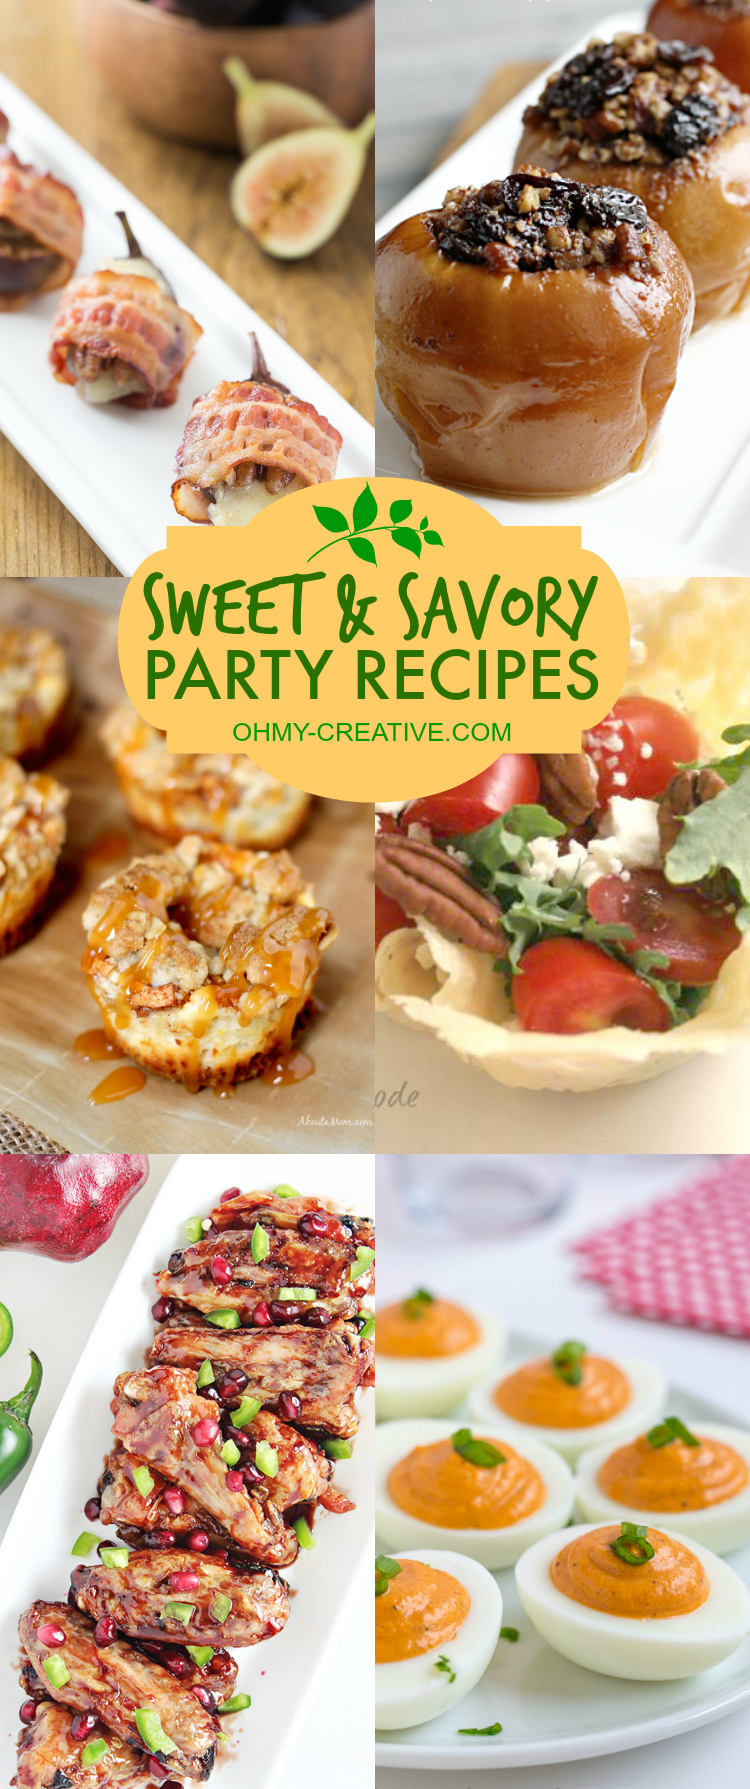 Sweet & Savory, I love them both! I am always looking for the perfect party recipes. I love to try new things when I entertain, so I put together a collection of Sweet and Savory Party Recipes to have on hand the next time I invite a few friends over or host a party!  |  OHMY-CREATIVE.COM